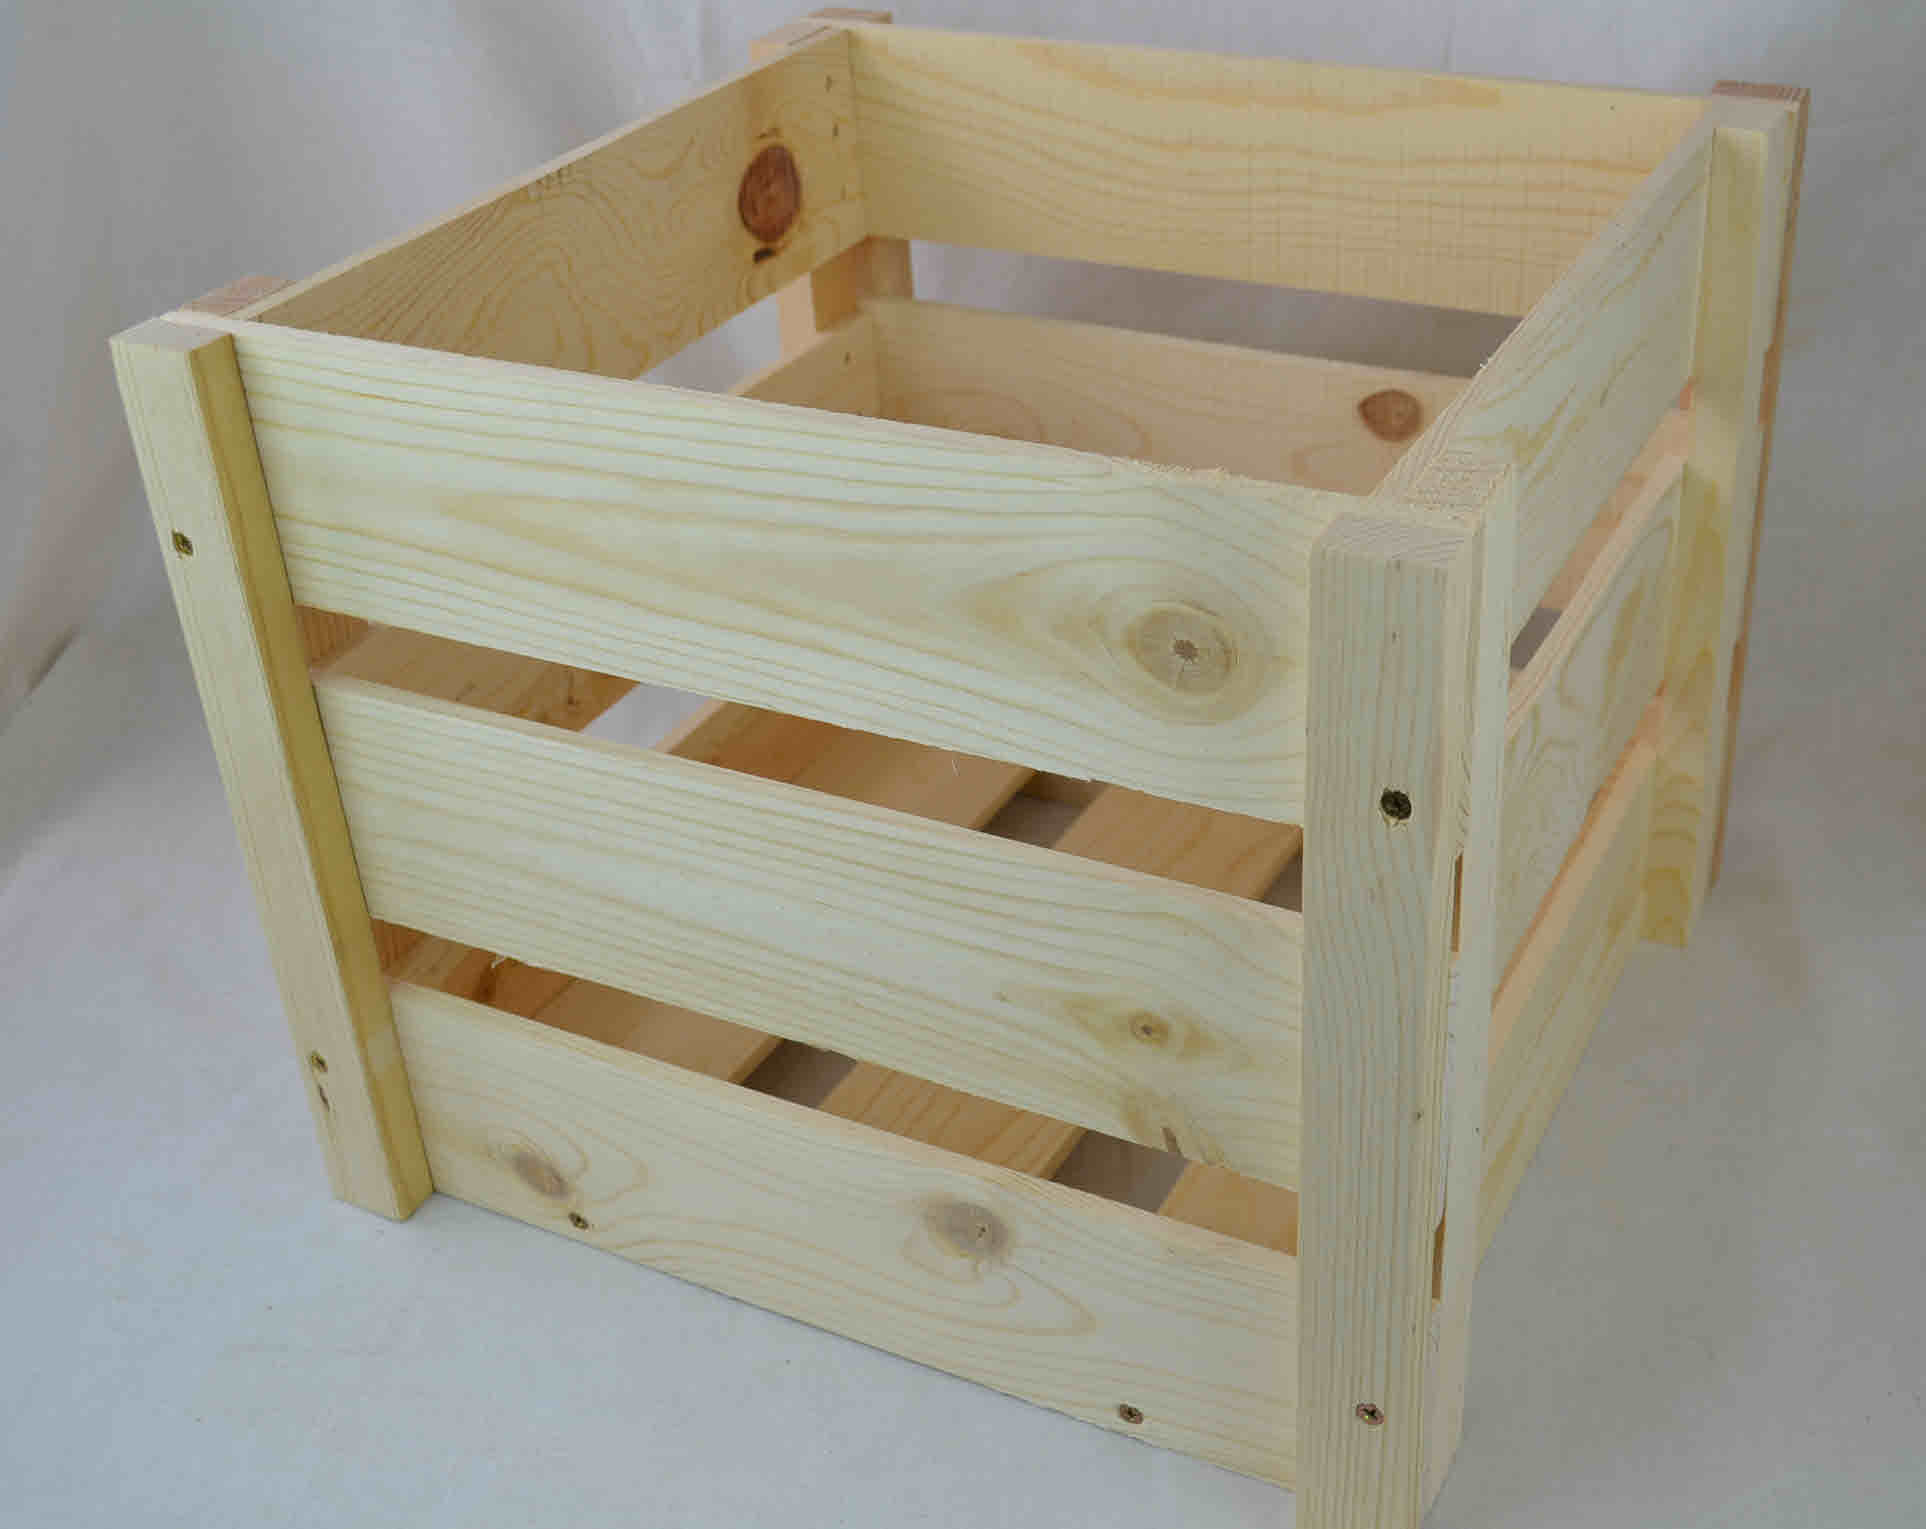 WHOLESALE WOODEN CRATES KNOCKDOWN STYLE (Qty. 12) | Poole & Sons, Inc.